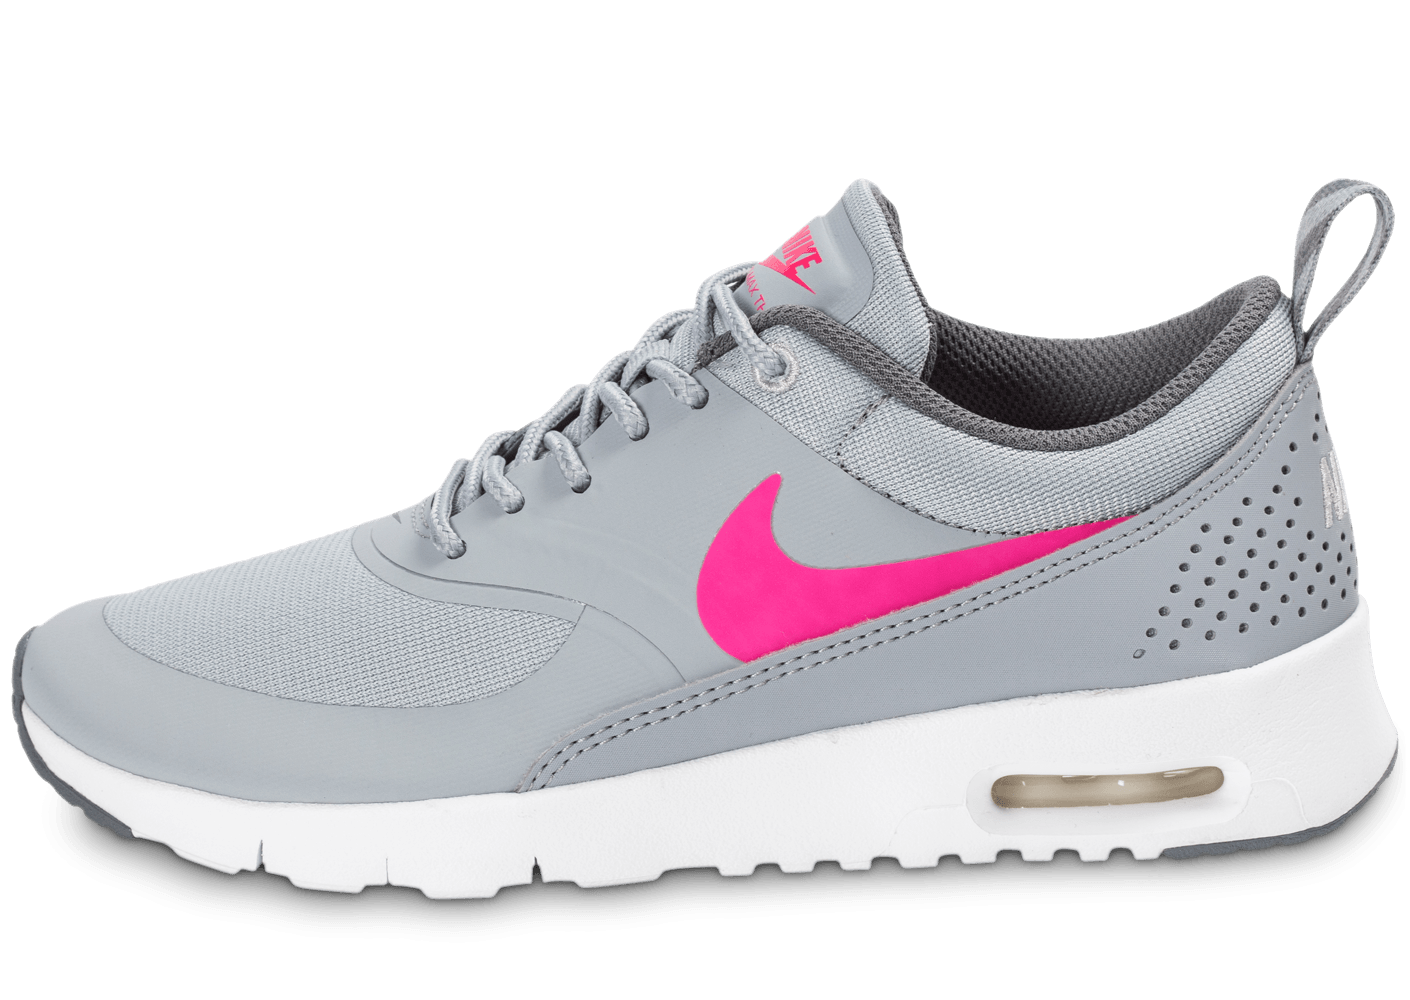 Nike Air Max Thea Junior grise et rose